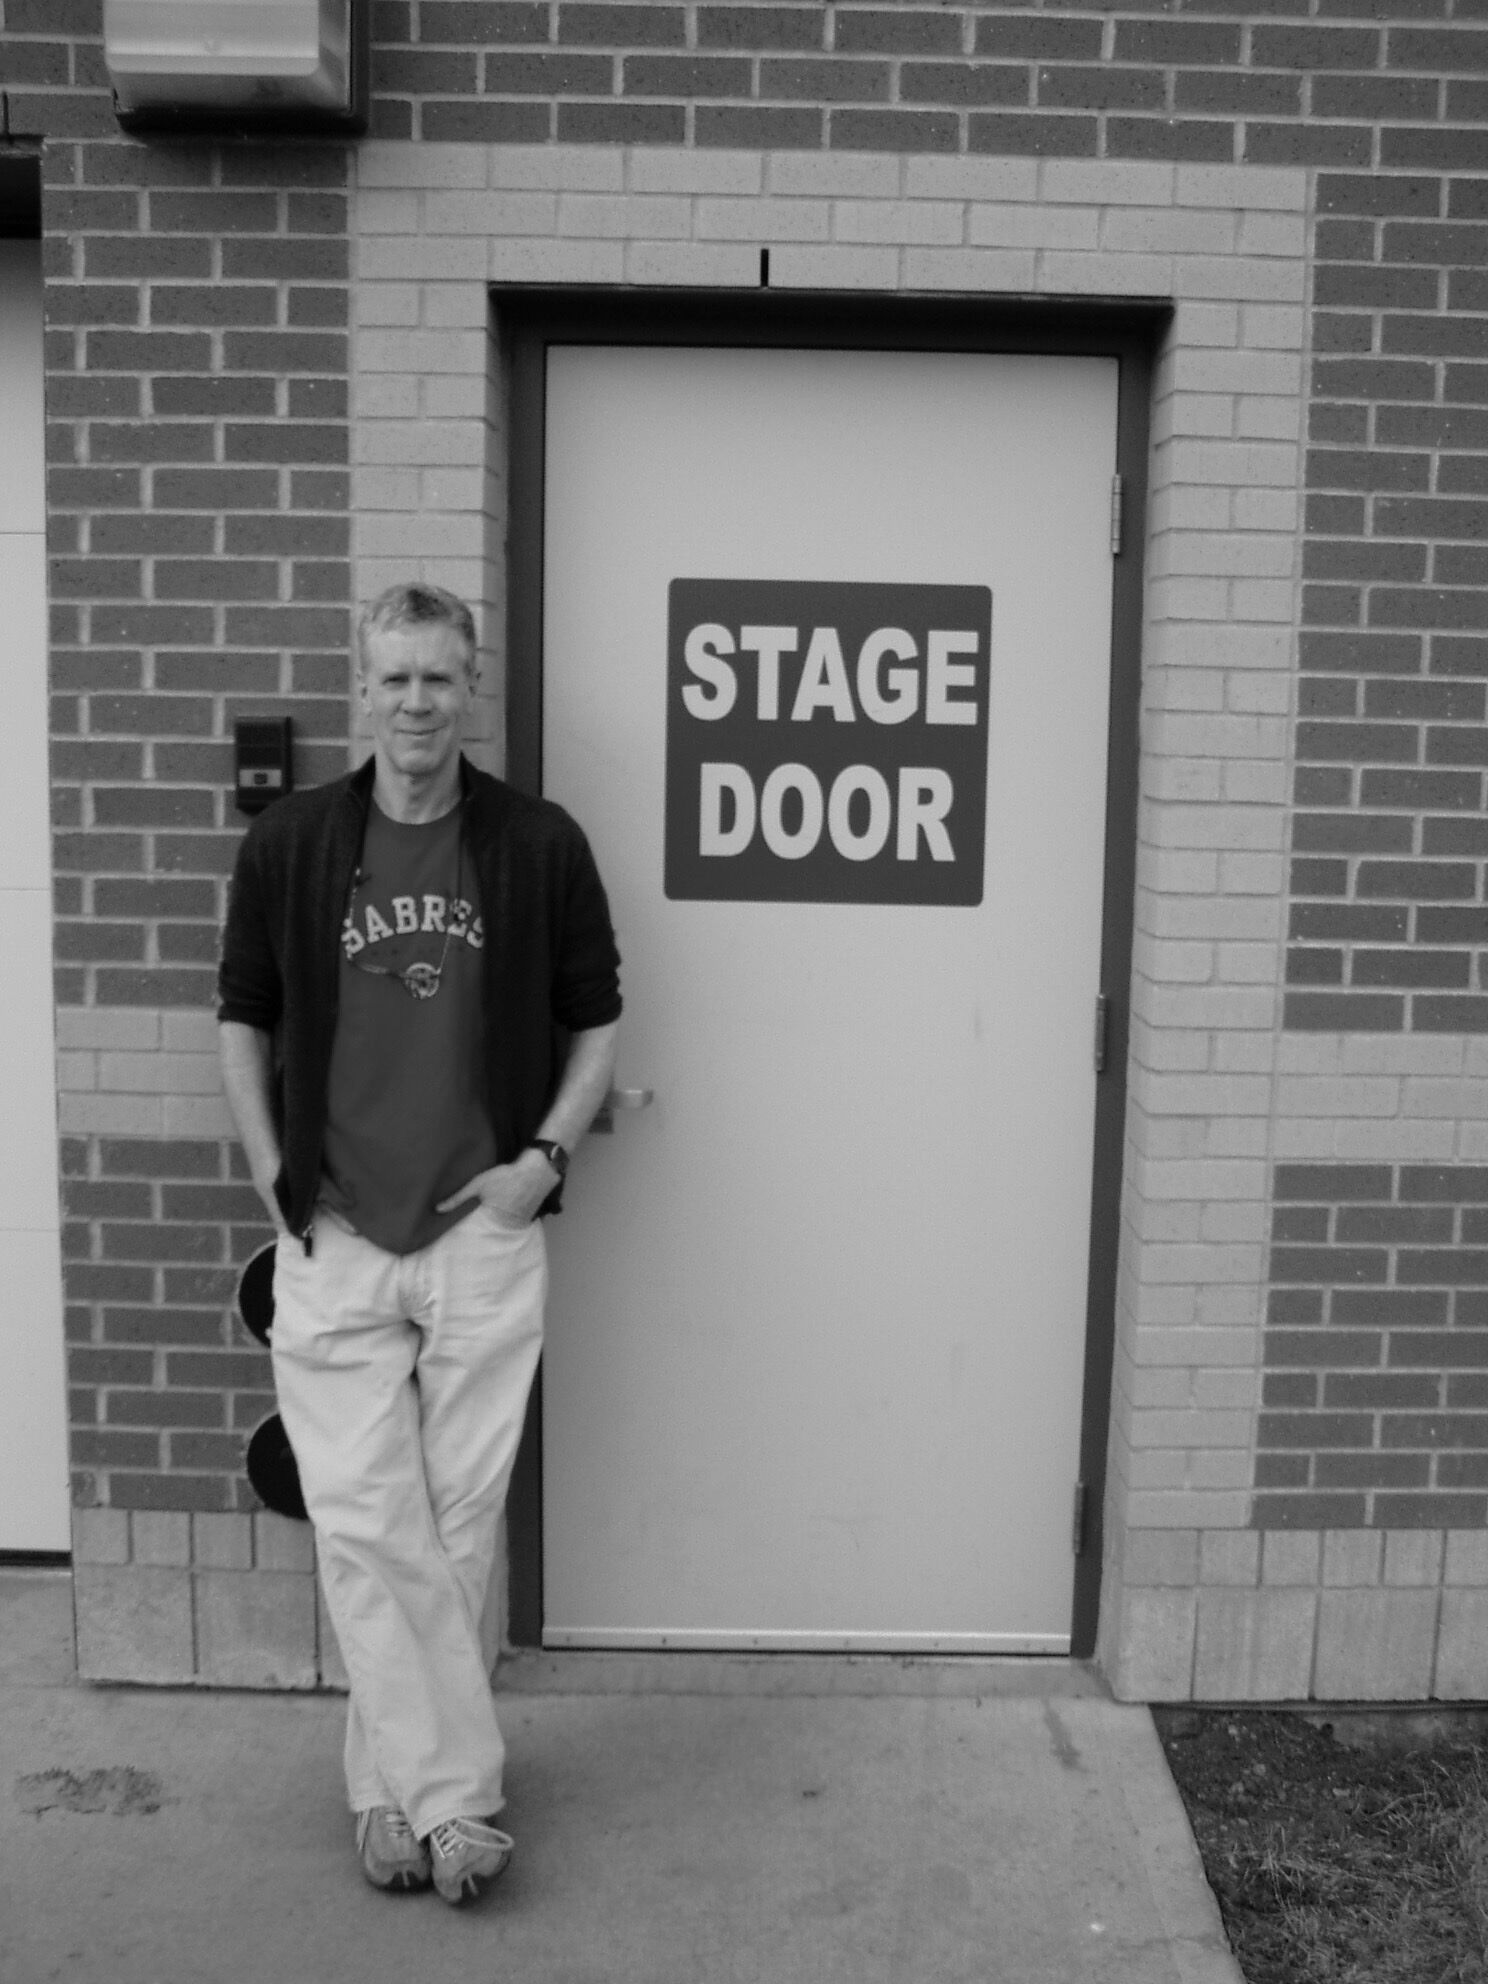 TOUR_stagedoor.jpeg